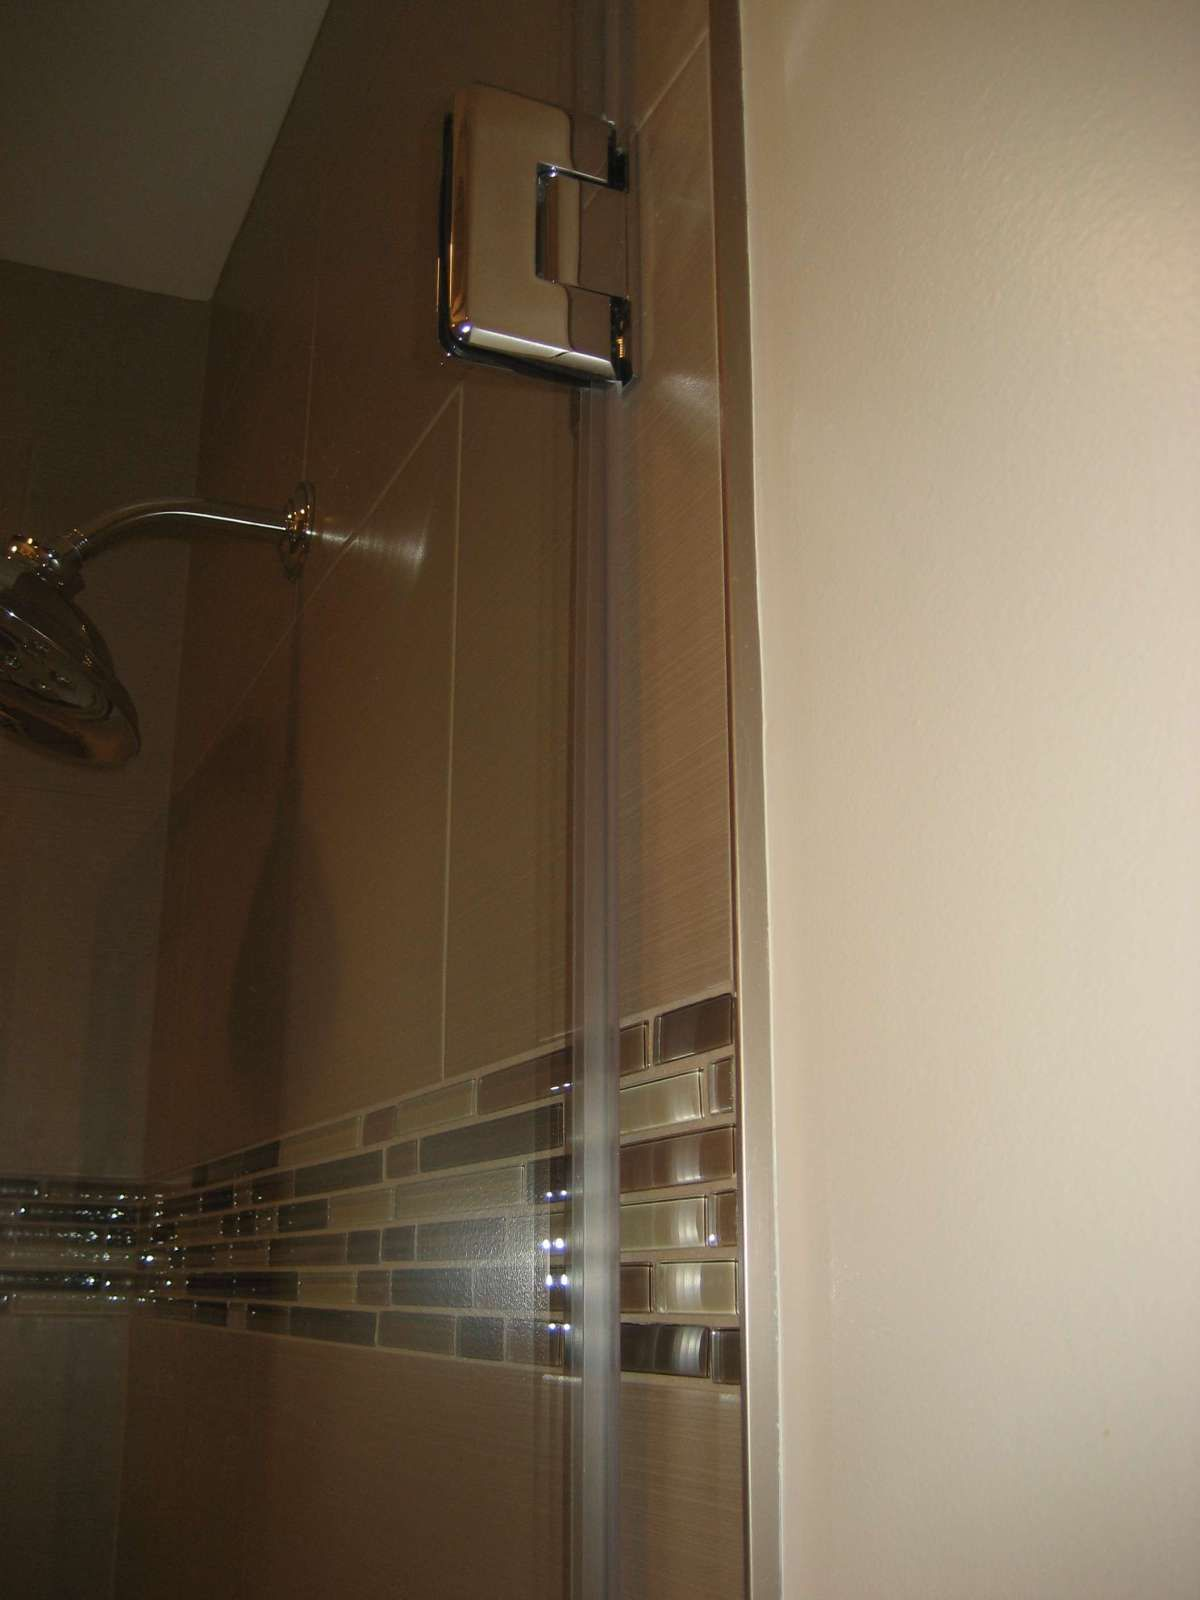 Chrome Tile Backsplash Schluter Jolly Alternative To Bullnoze Tile For Shower